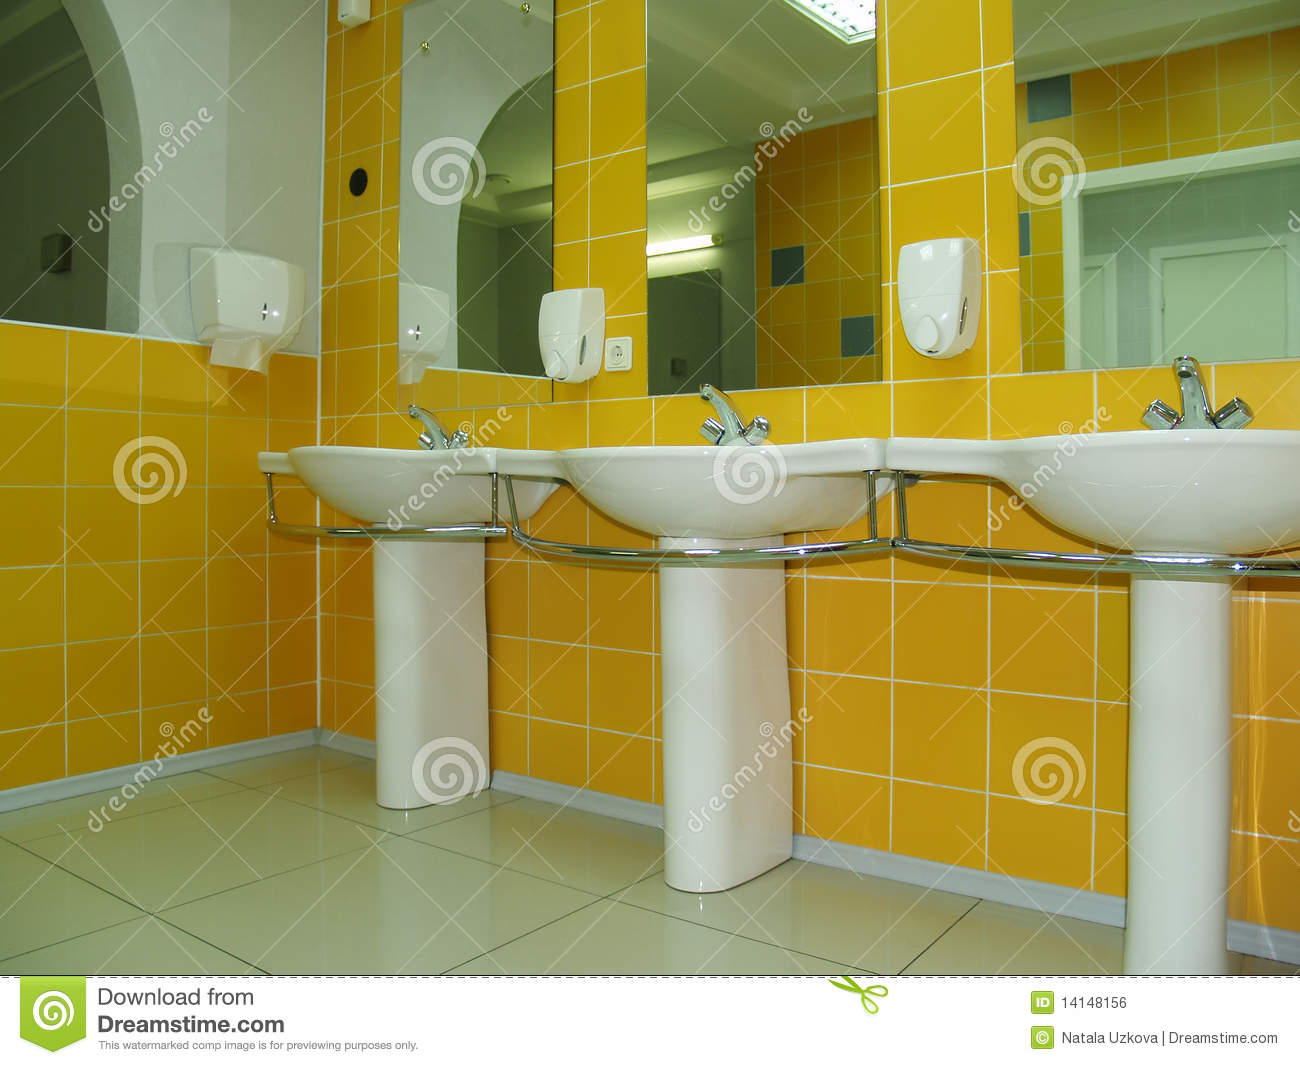 Bathroom Or Toilet With A Yellow Tile, Bowls Royalty Free Stock ...